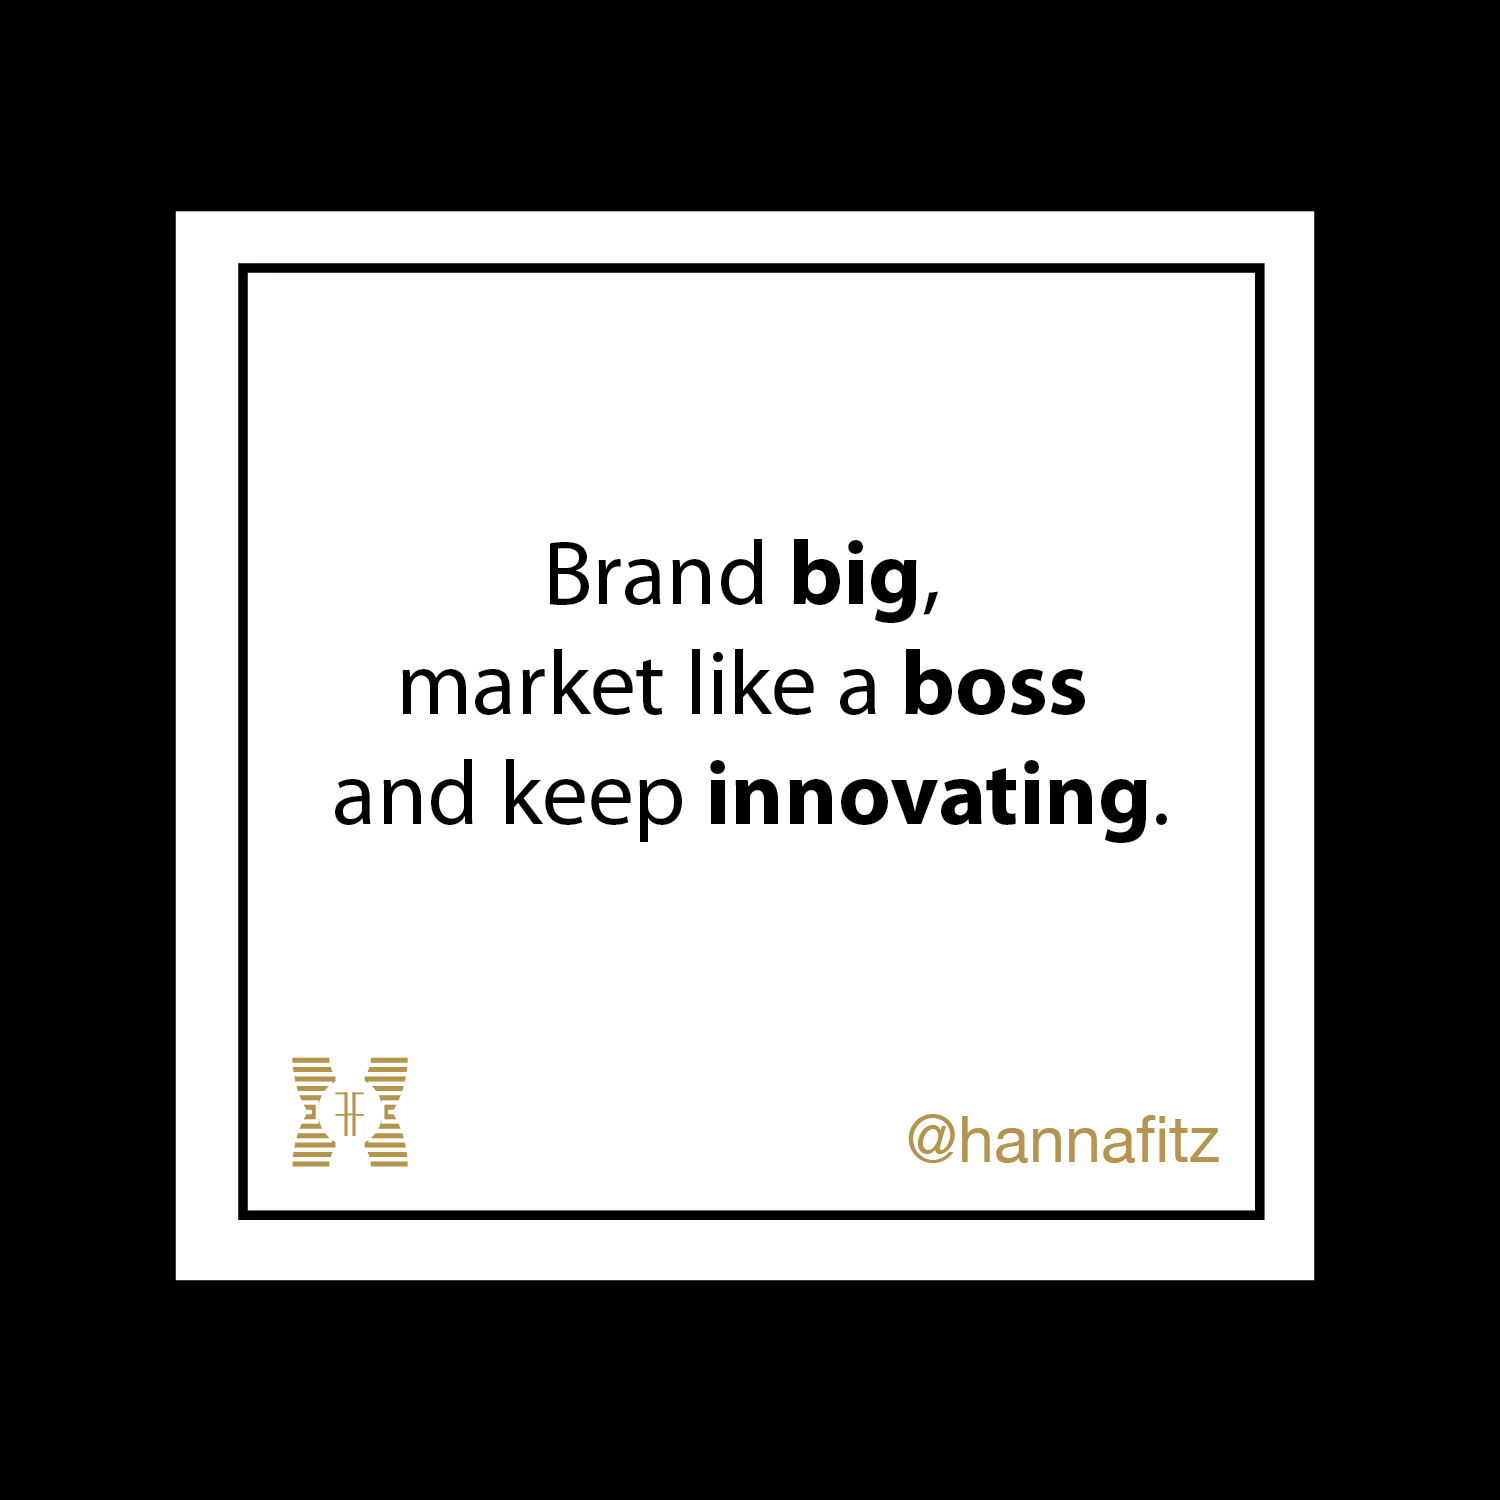 Create a brand image that will attract your ideal customers and give you the positioning you want in the market.